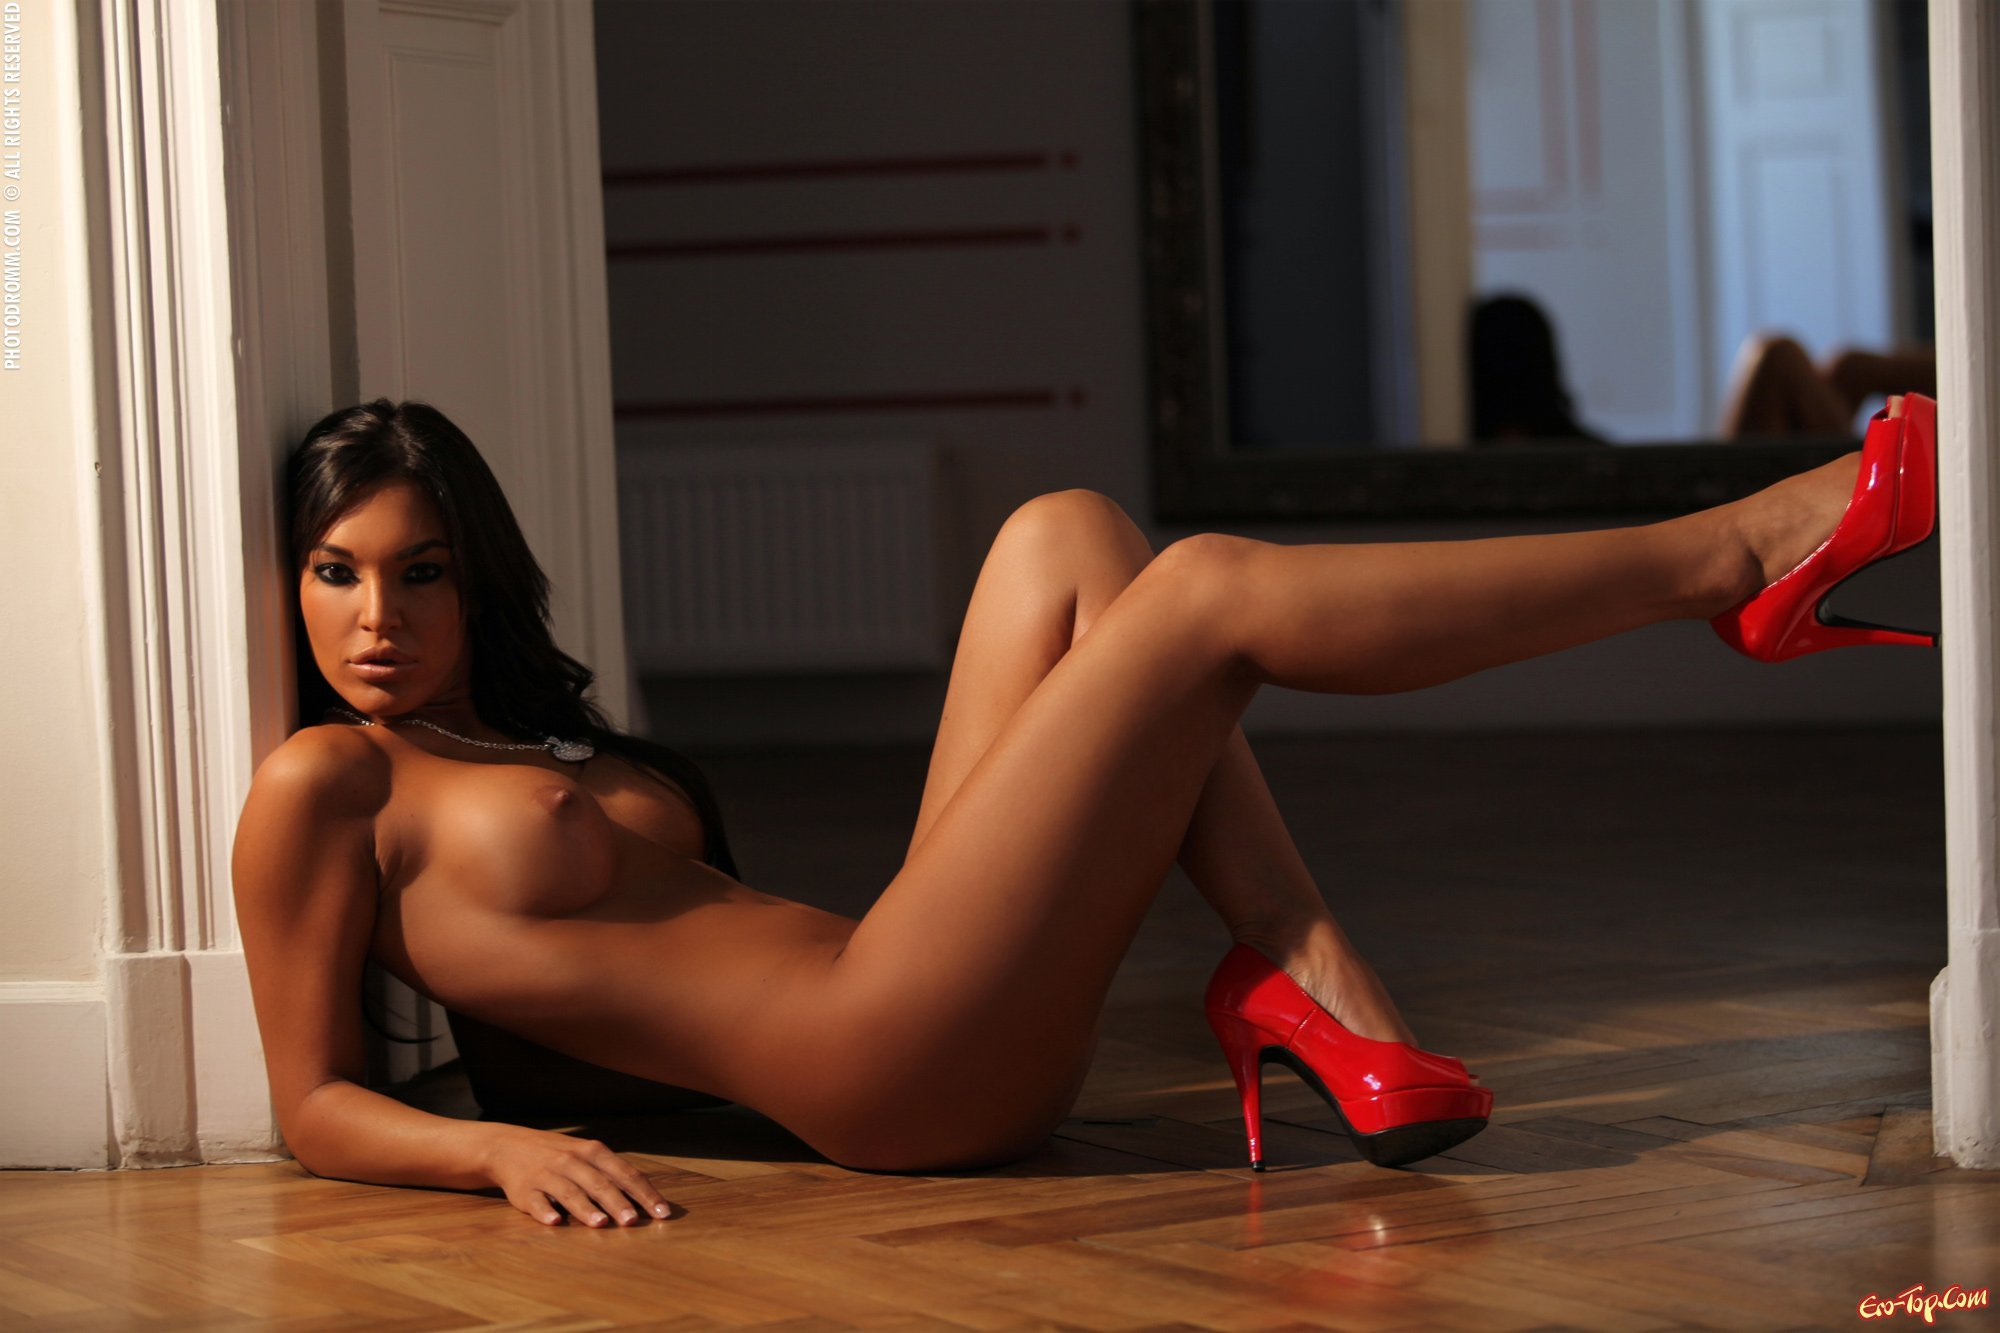 Nude girl on haunches, free nude girl strip videos